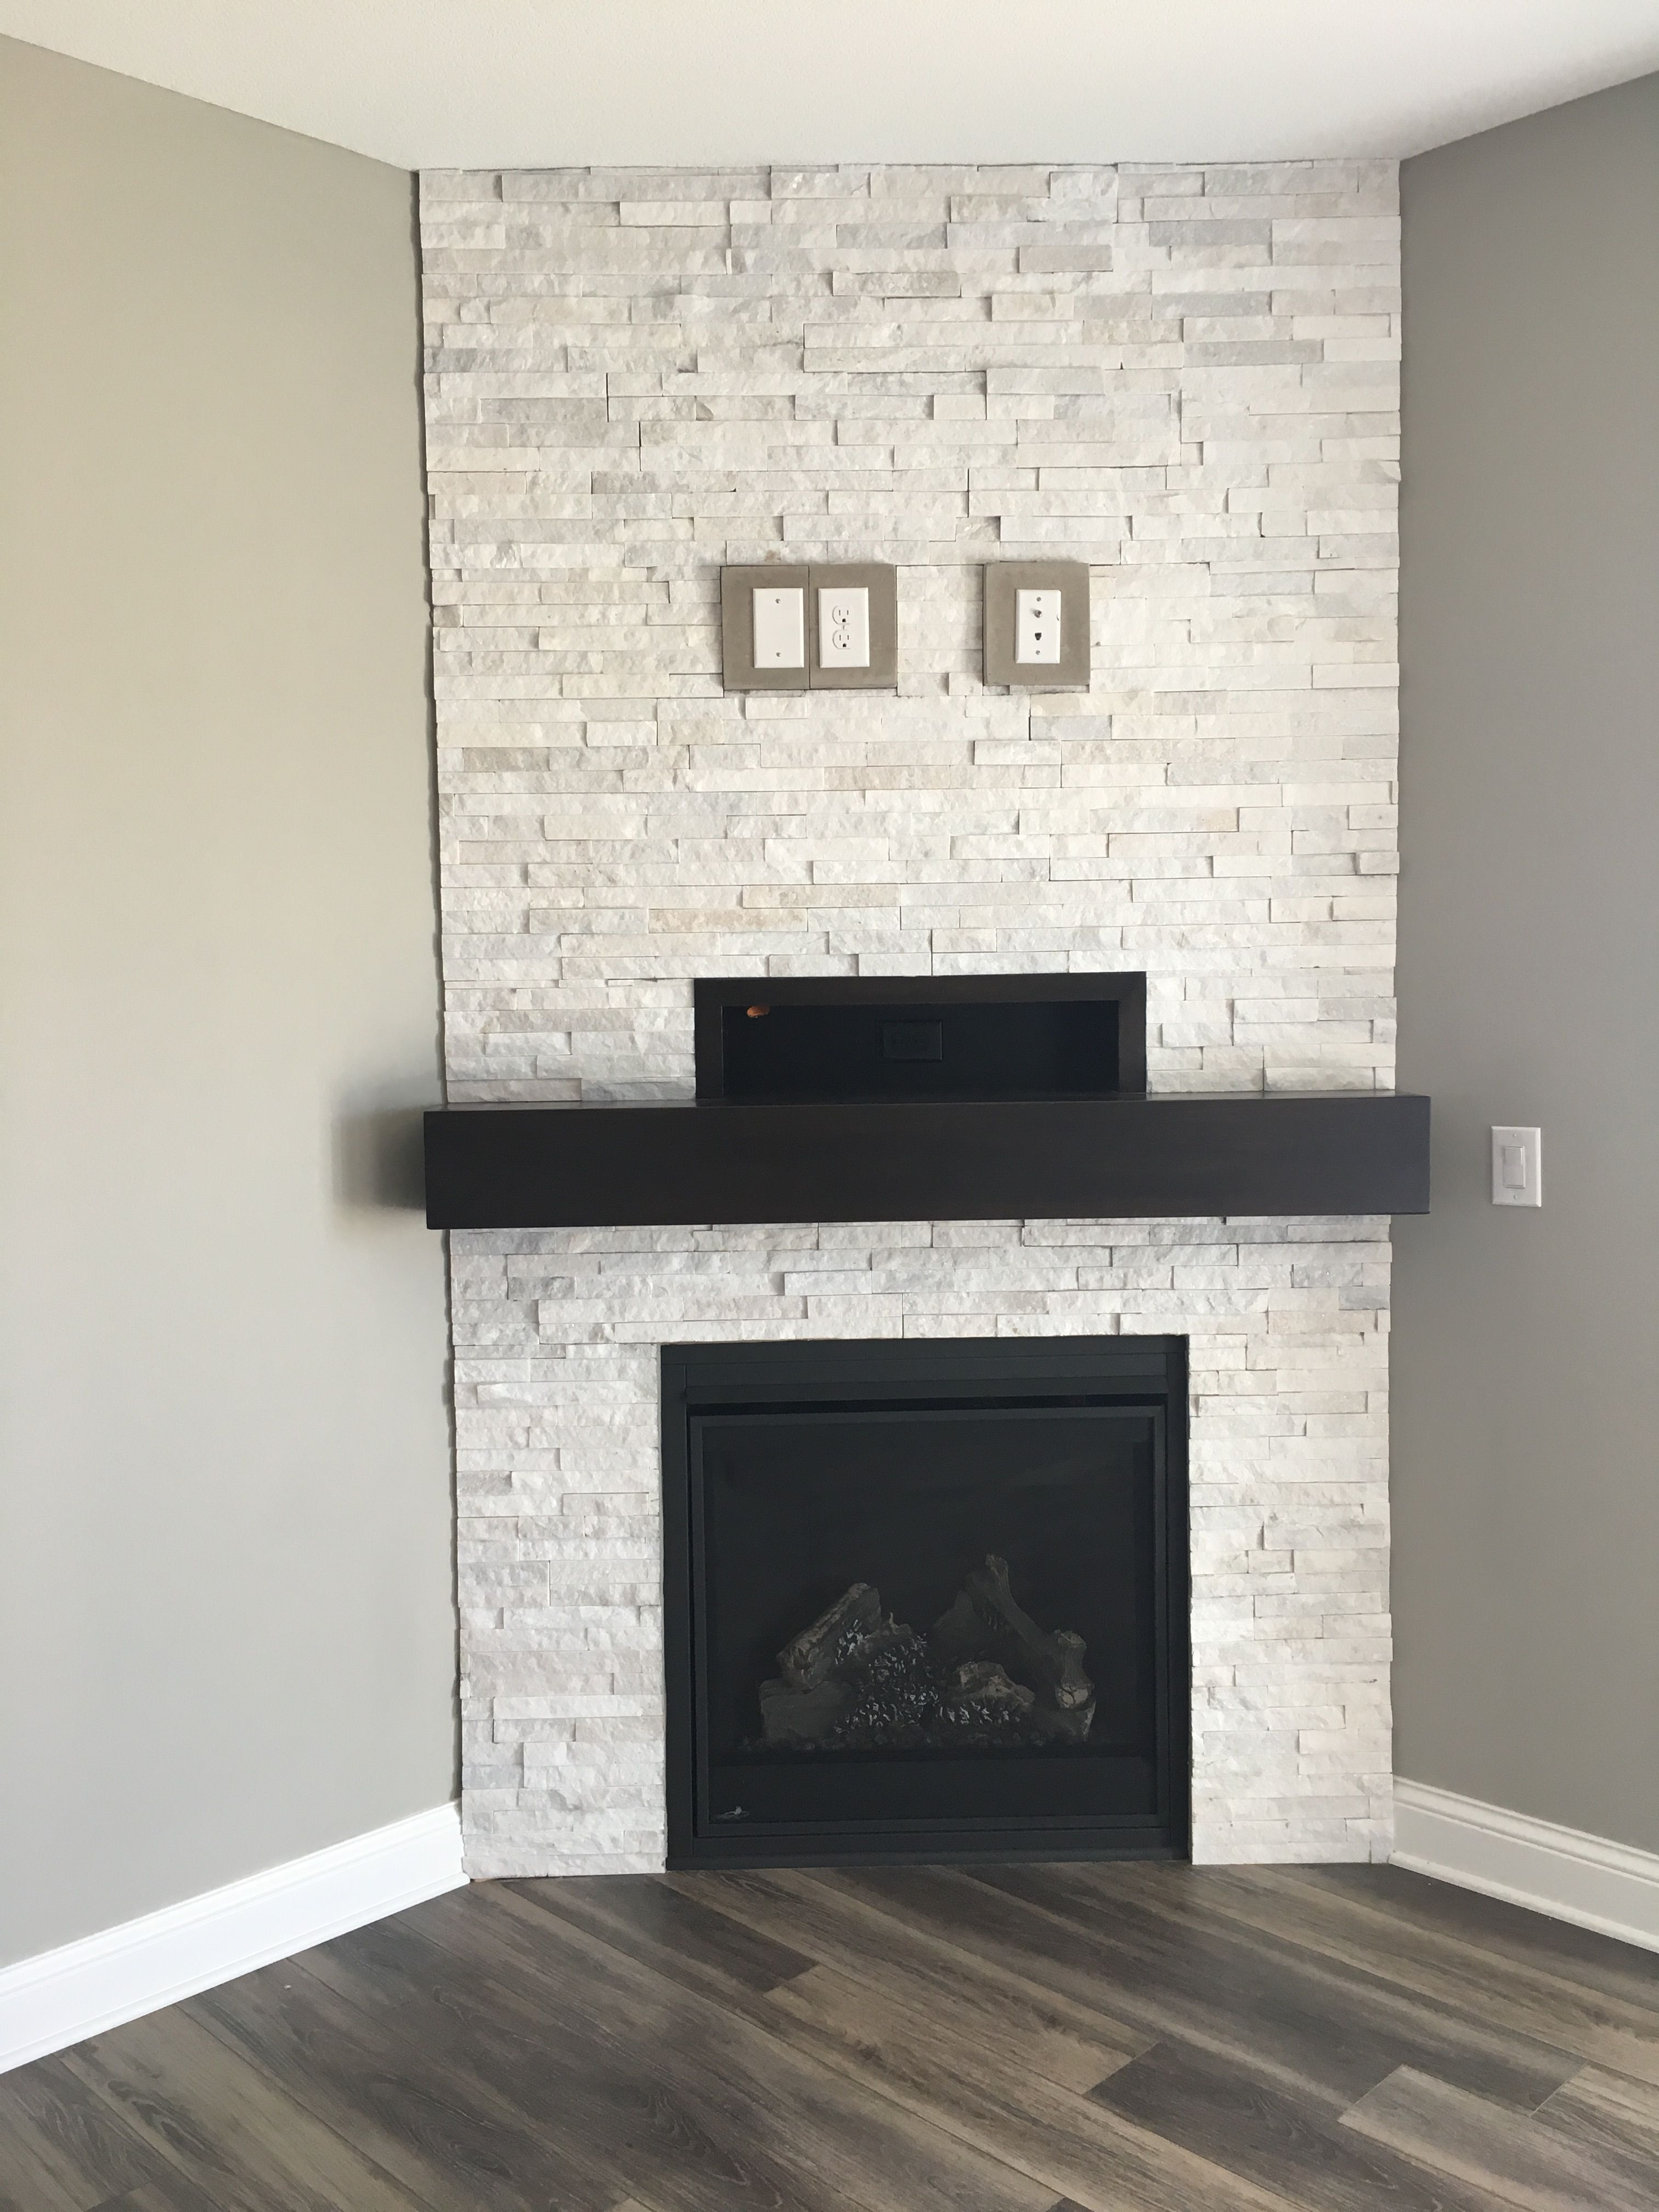 Tile Around Fireplace Ideas Awesome Pin On Fireplace Ideas We Love